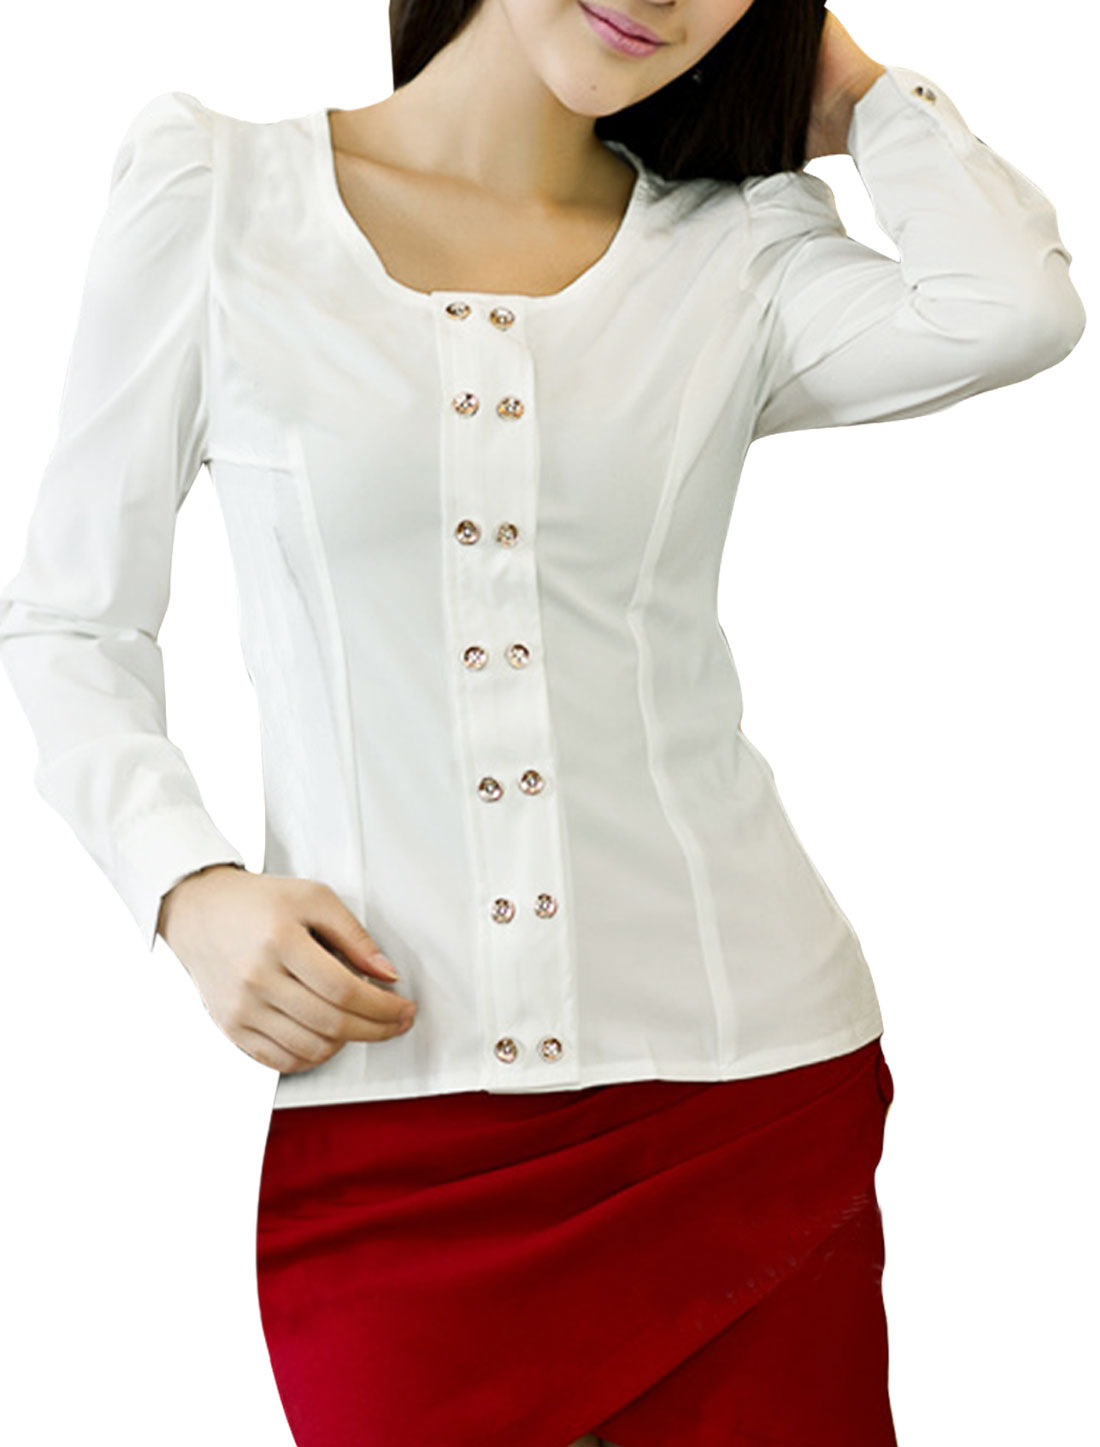 Woman Pure White Color Double-Breasted Front Casual Top Blouse XS